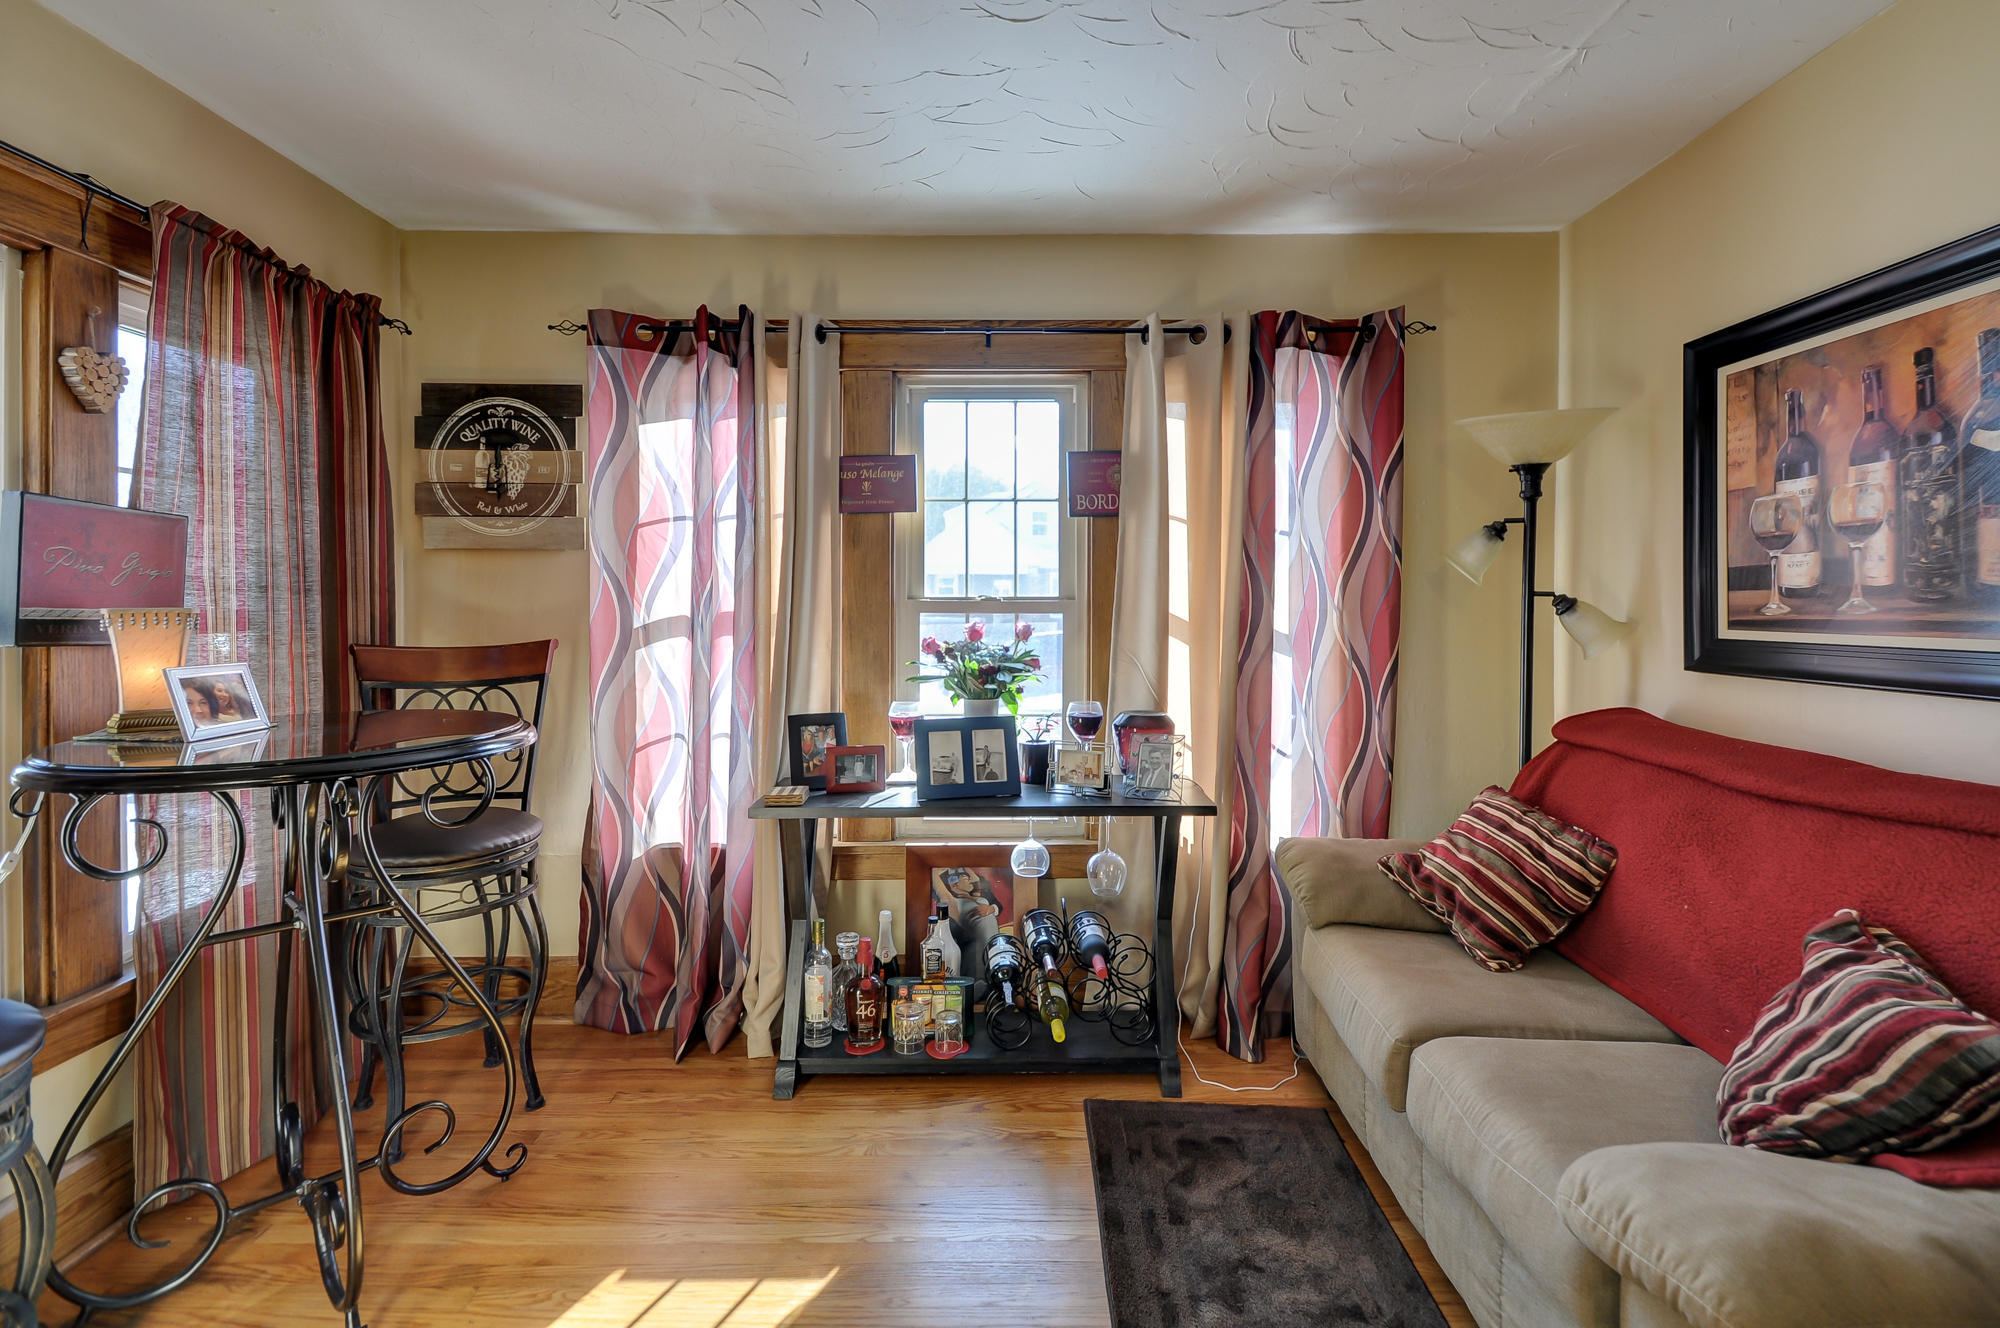 3510 Haven Ave, Racine, Wisconsin 53405, 3 Bedrooms Bedrooms, 7 Rooms Rooms,1 BathroomBathrooms,Two-Family,For Sale,Haven Ave,1,1667785